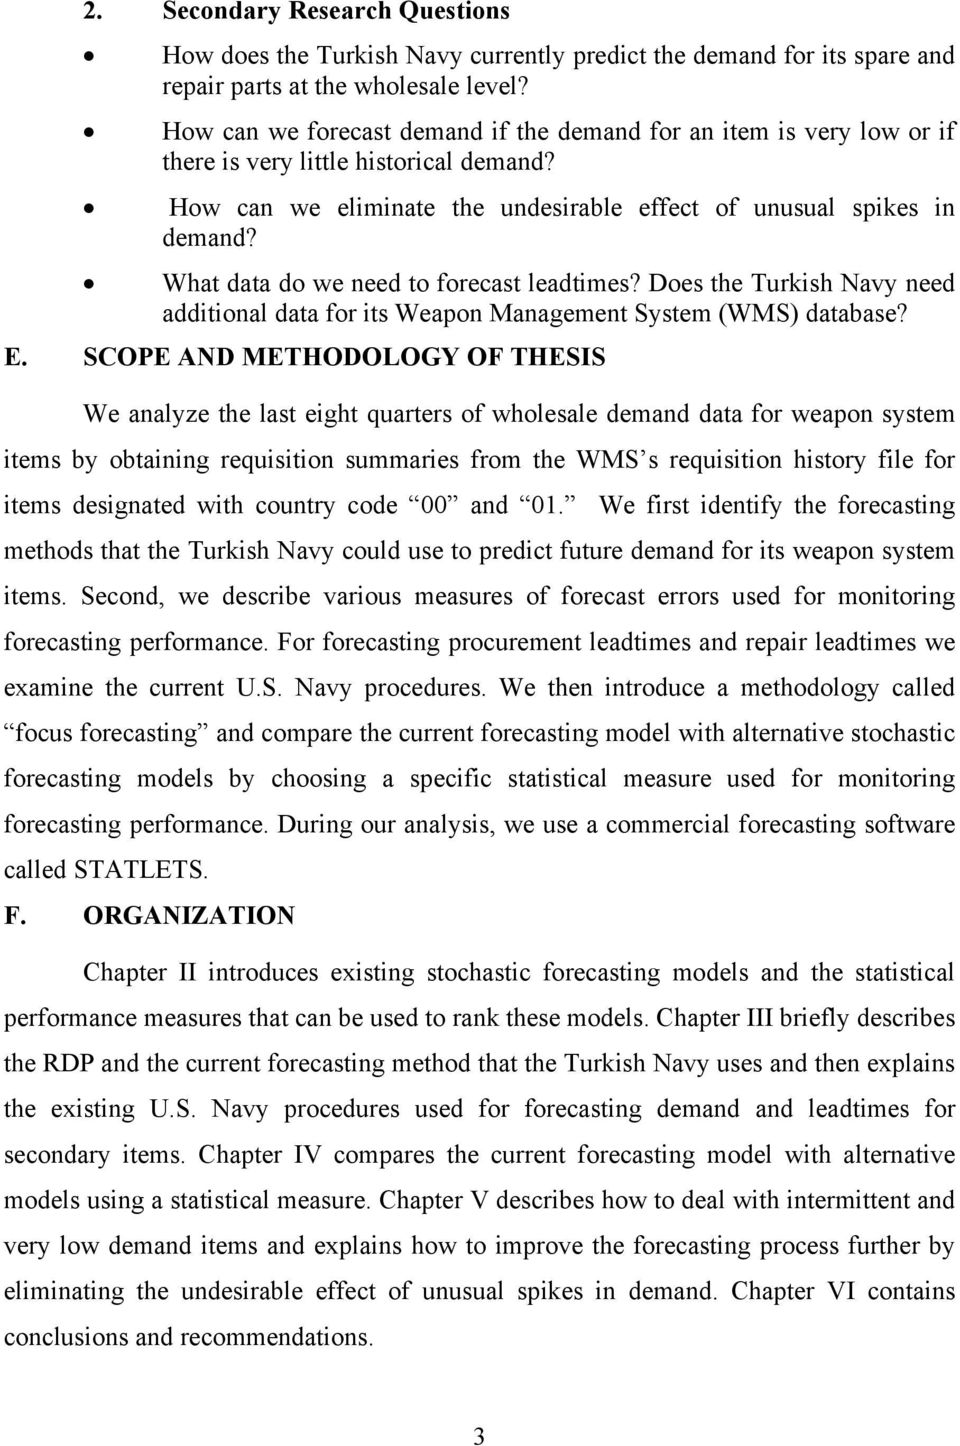 What data do we need to forecast leadtimes? Does the Turkish Navy need additional data for its Weapon Management System (WMS) database? E.